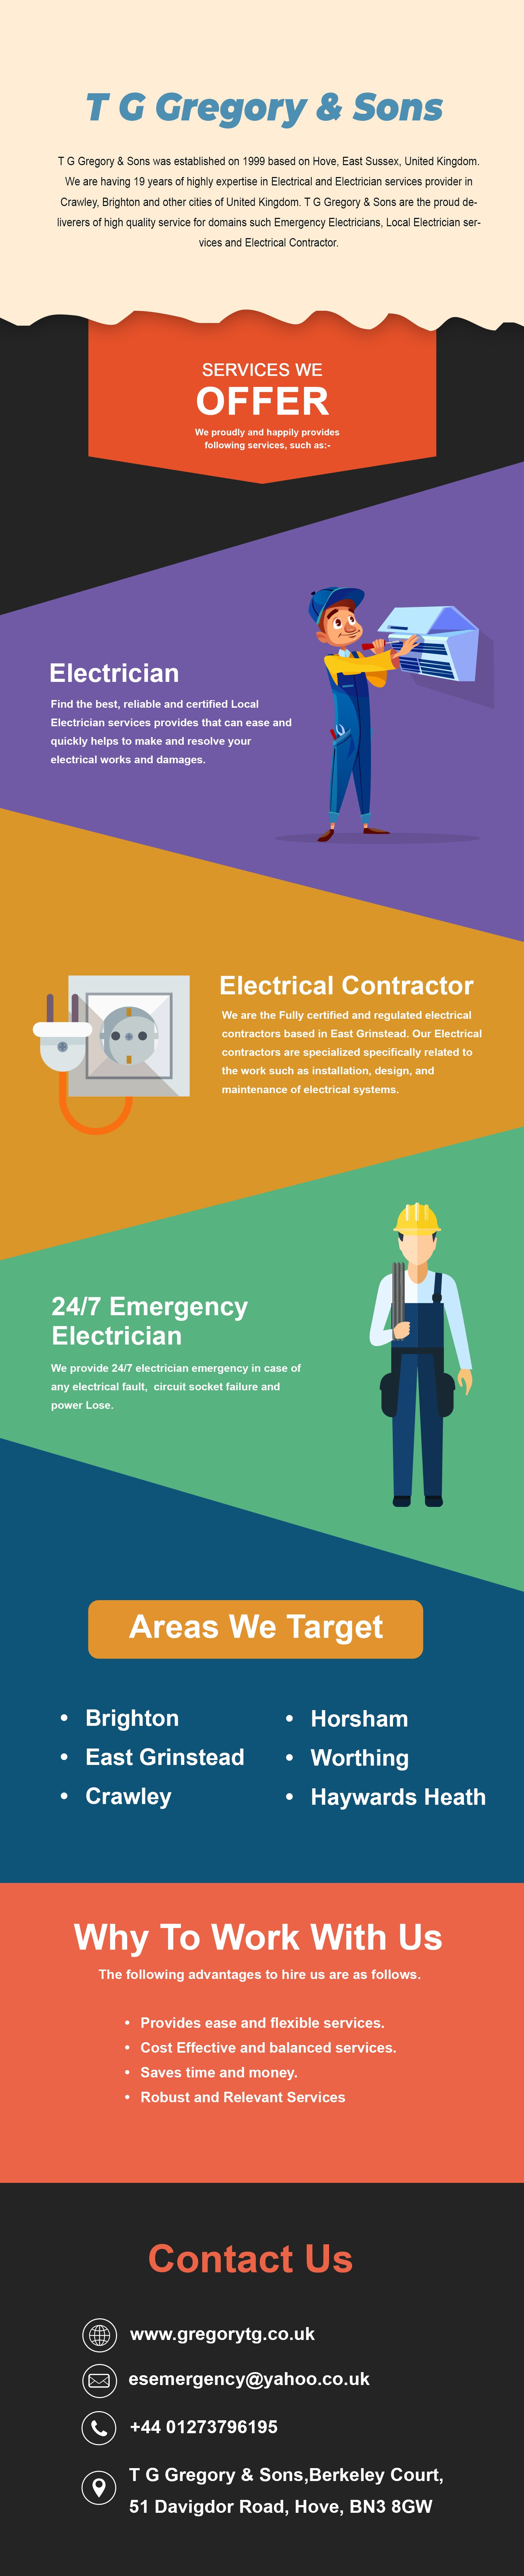 Infographic - T G Gregory & Sons Emergency Electrician